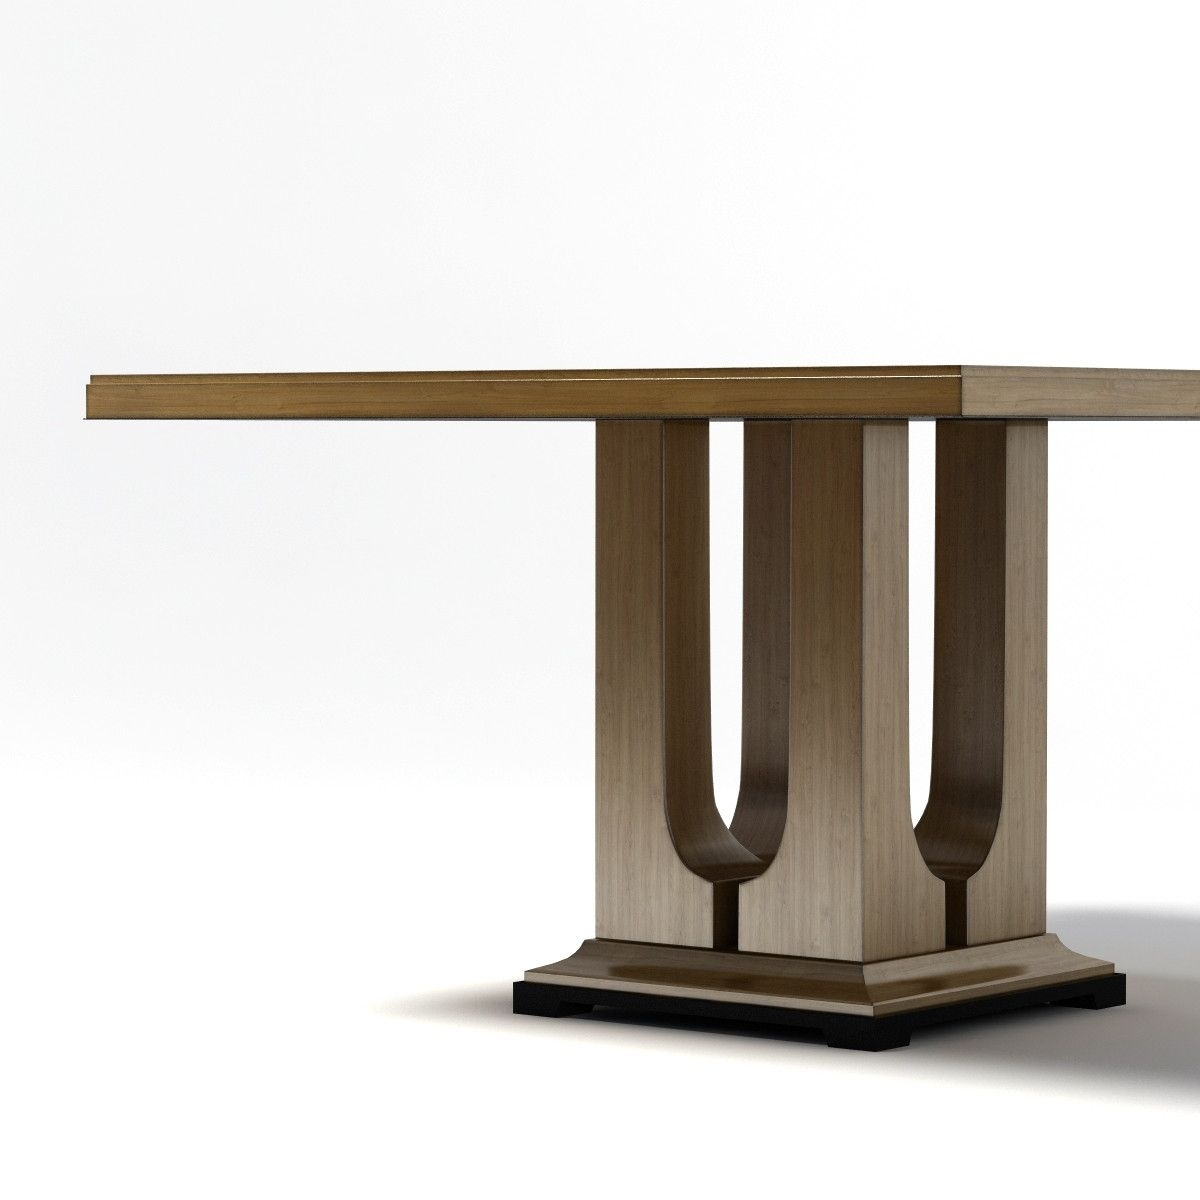 Donghia Laurent Dining Table | Furniture | Pinterest | Tables In Recent Laurent Rectangle Dining Tables (Image 3 of 20)